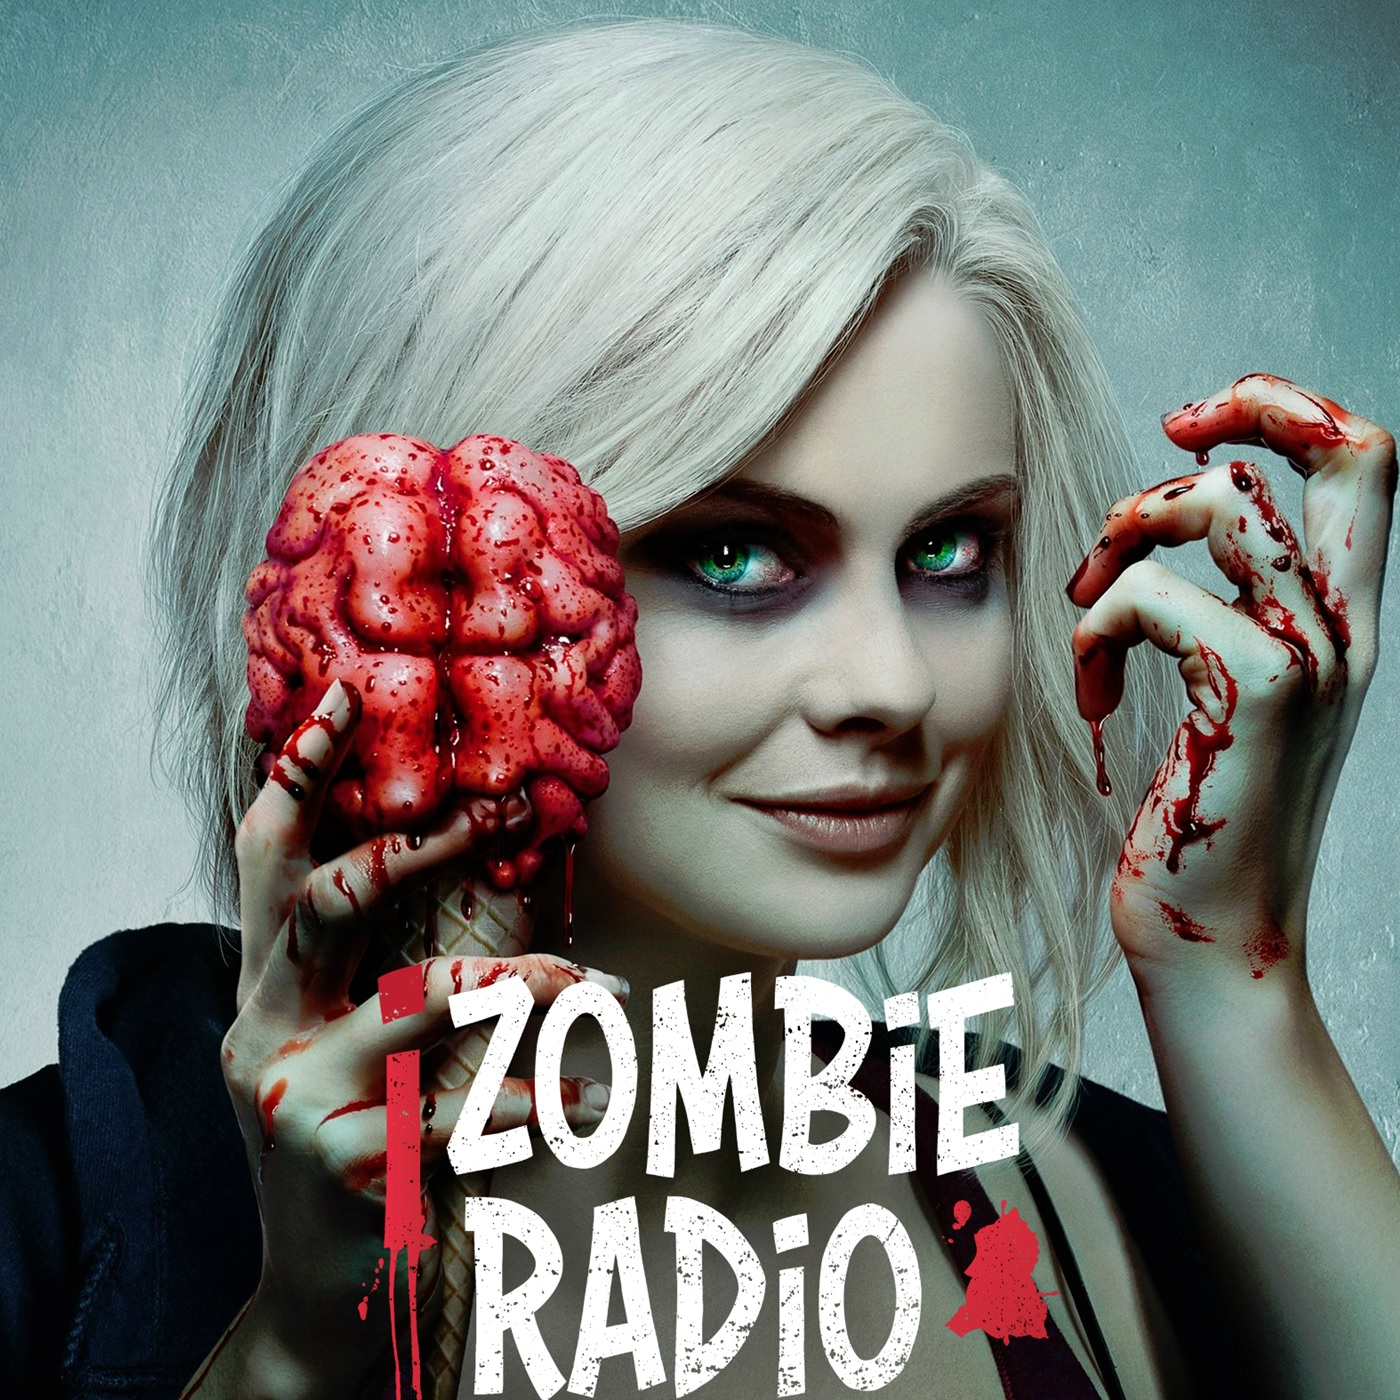 iZombie Radio iTunes Profile